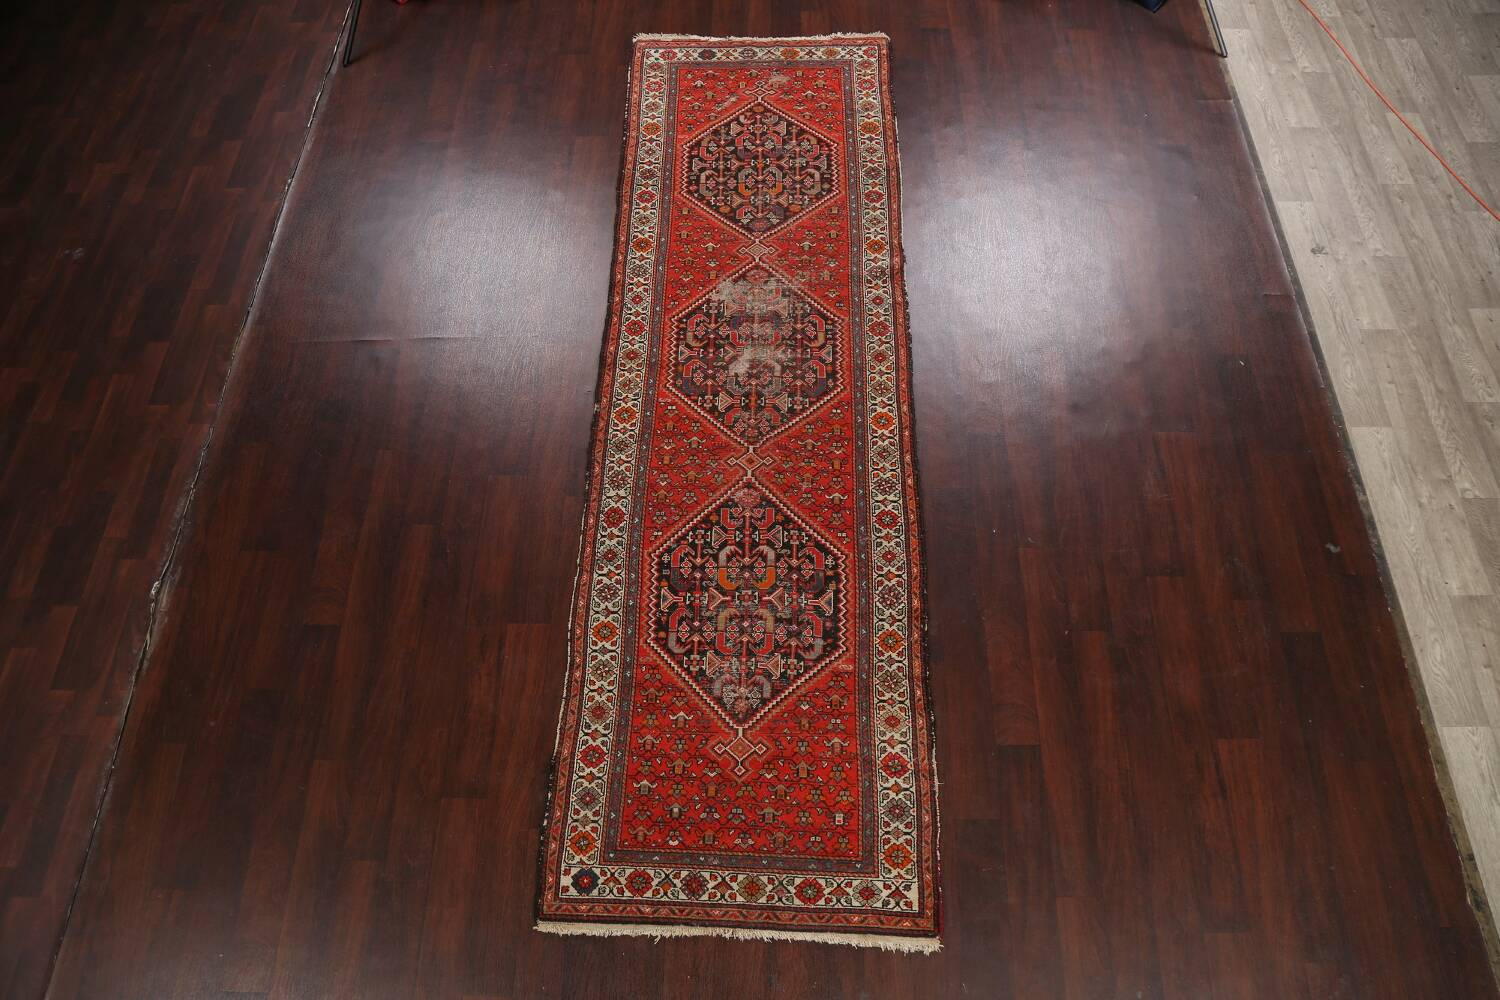 Antique Vegetable Dye Malayer Persian Runner Rug 3x11 image 2